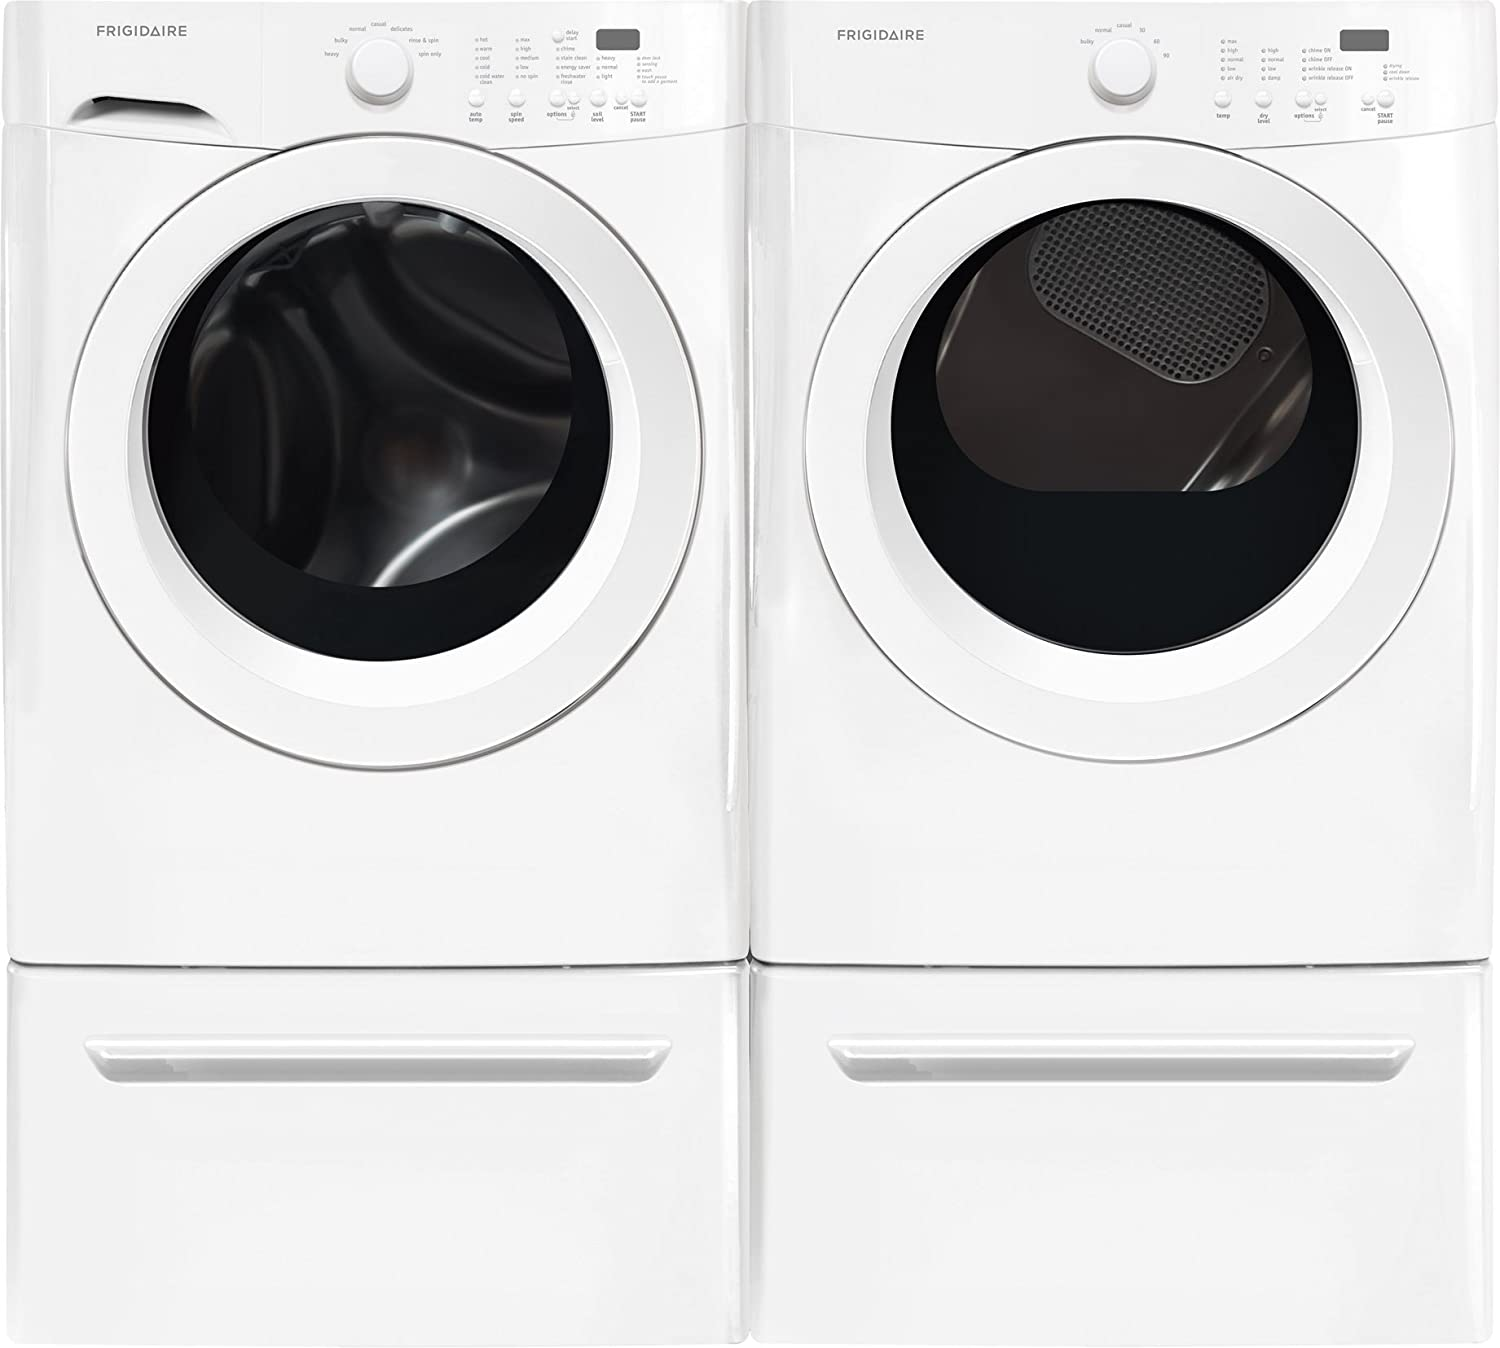 71P8GGxiaRL._SL1500_ amazon com frigidaire white front load laundry pair with  at crackthecode.co